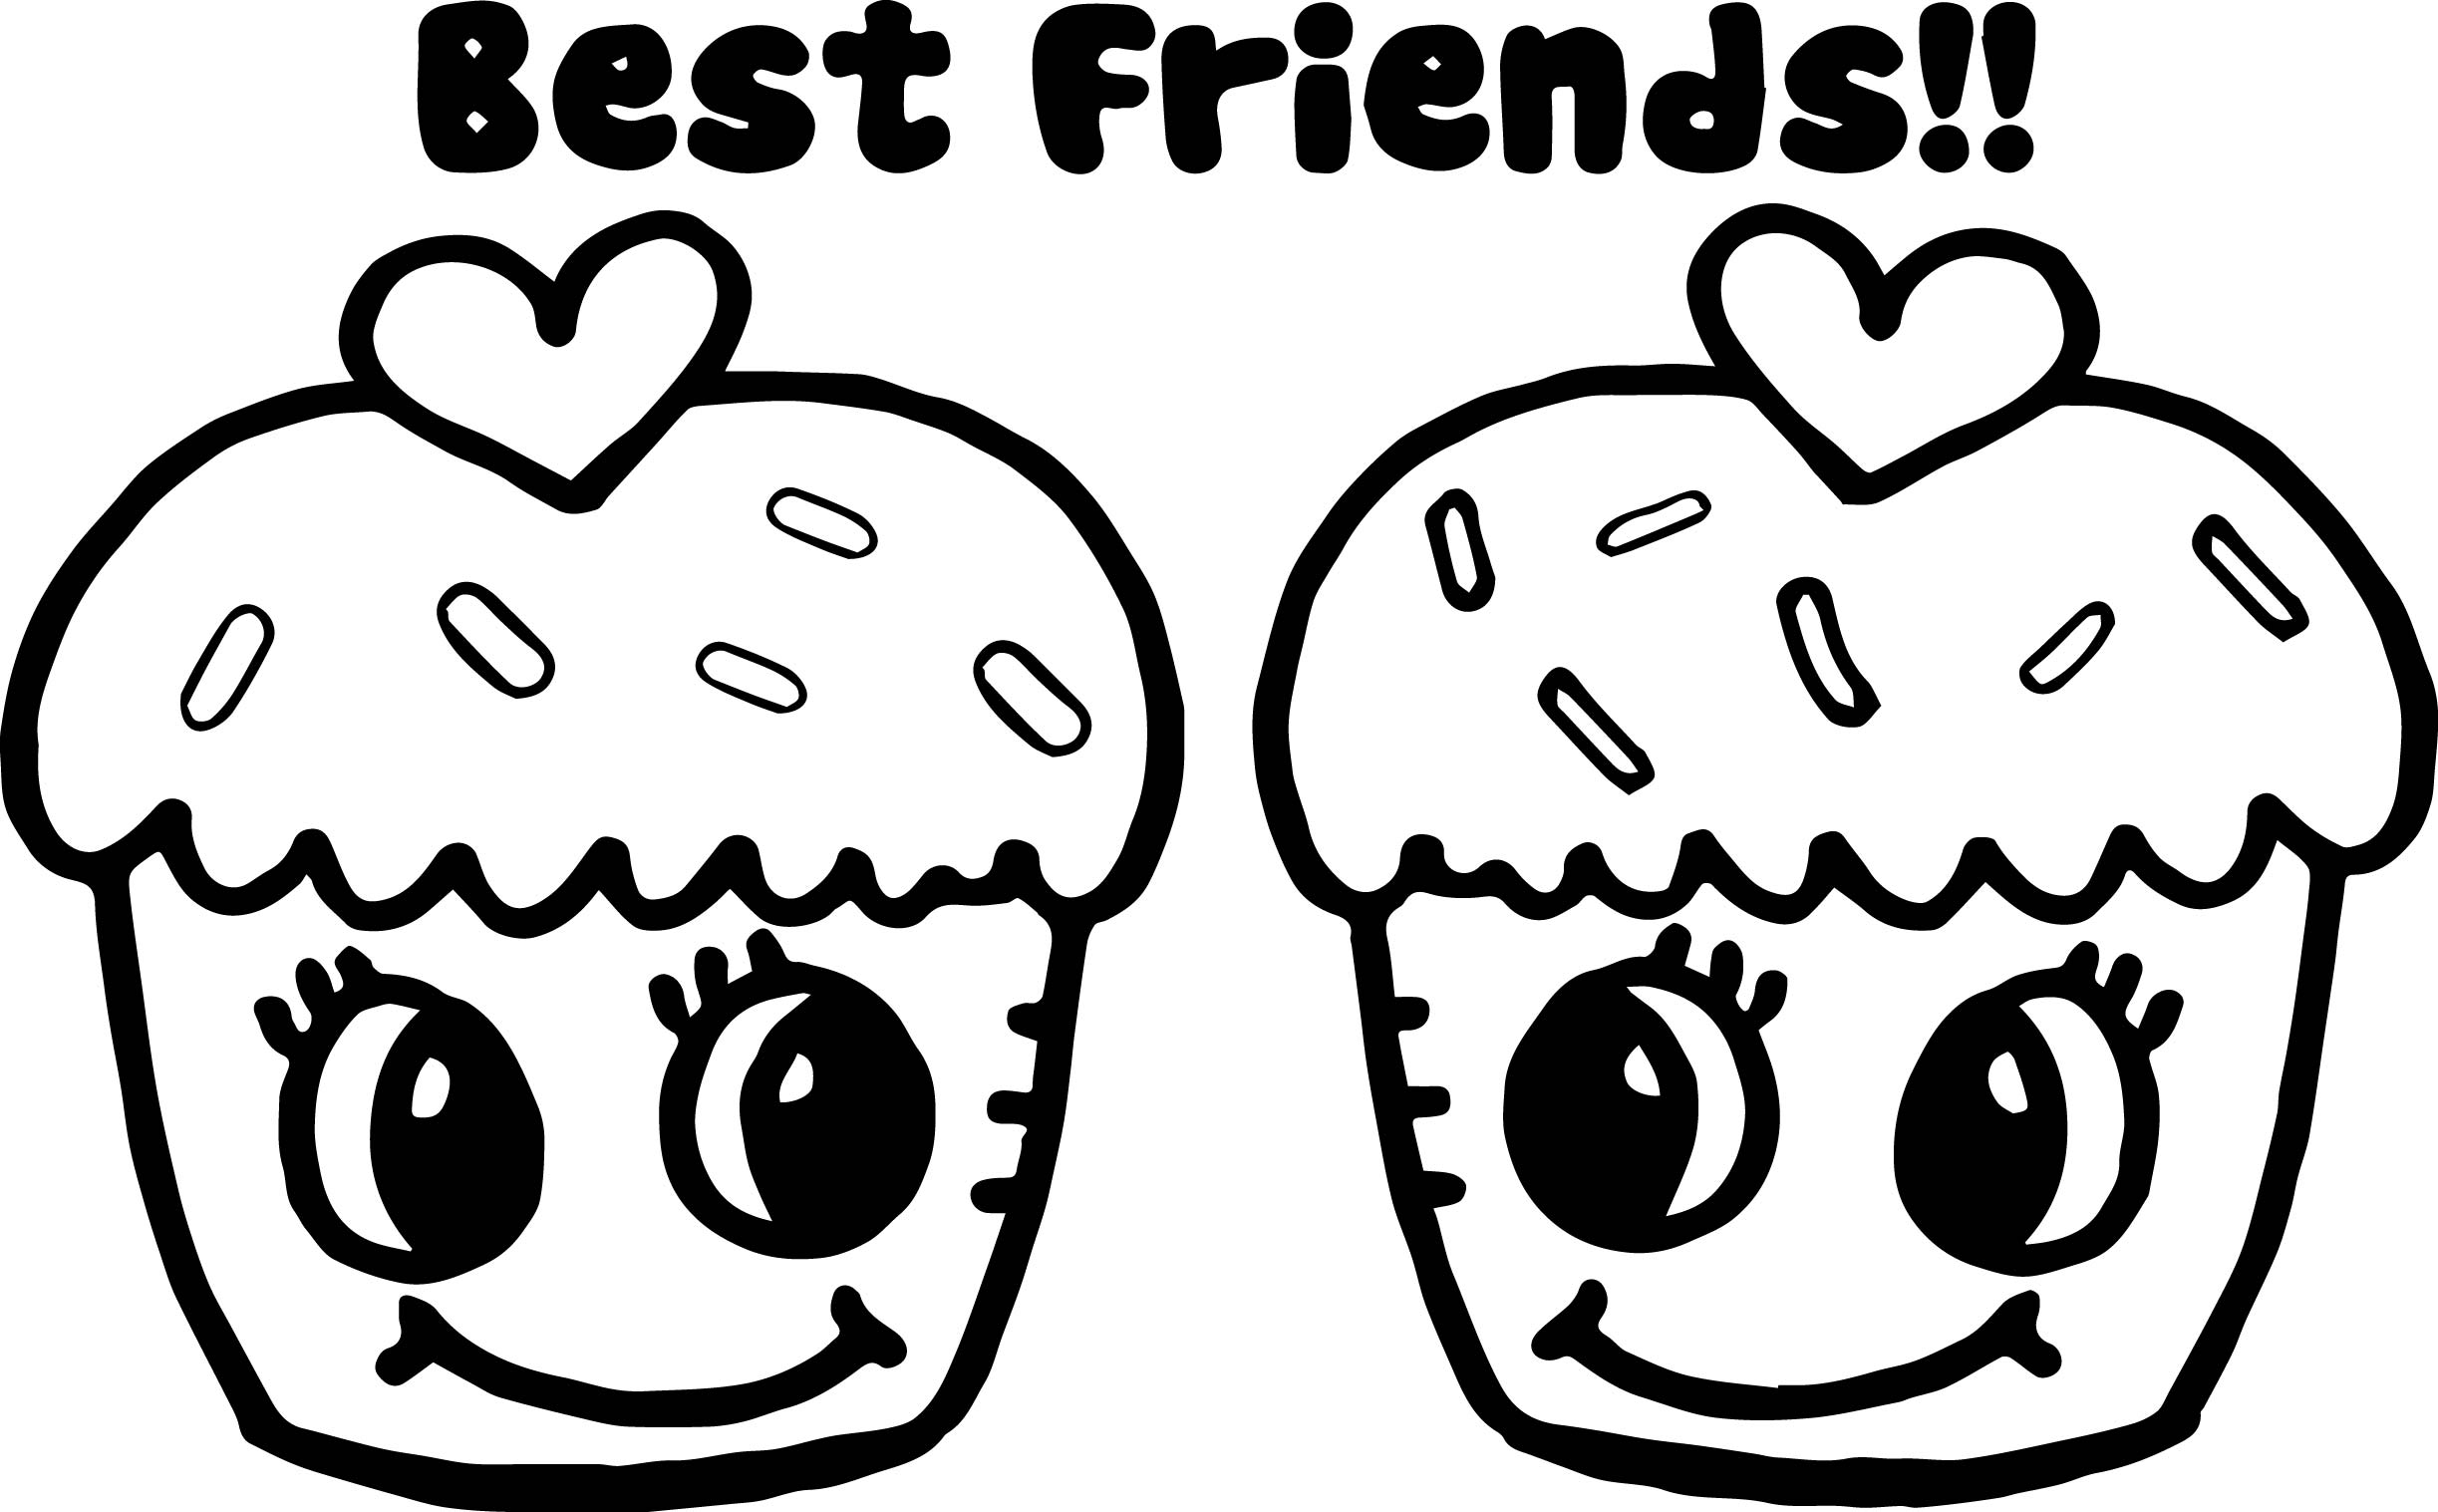 best friend coloring pictures best friend coloring pages to download and print for free coloring pictures best friend